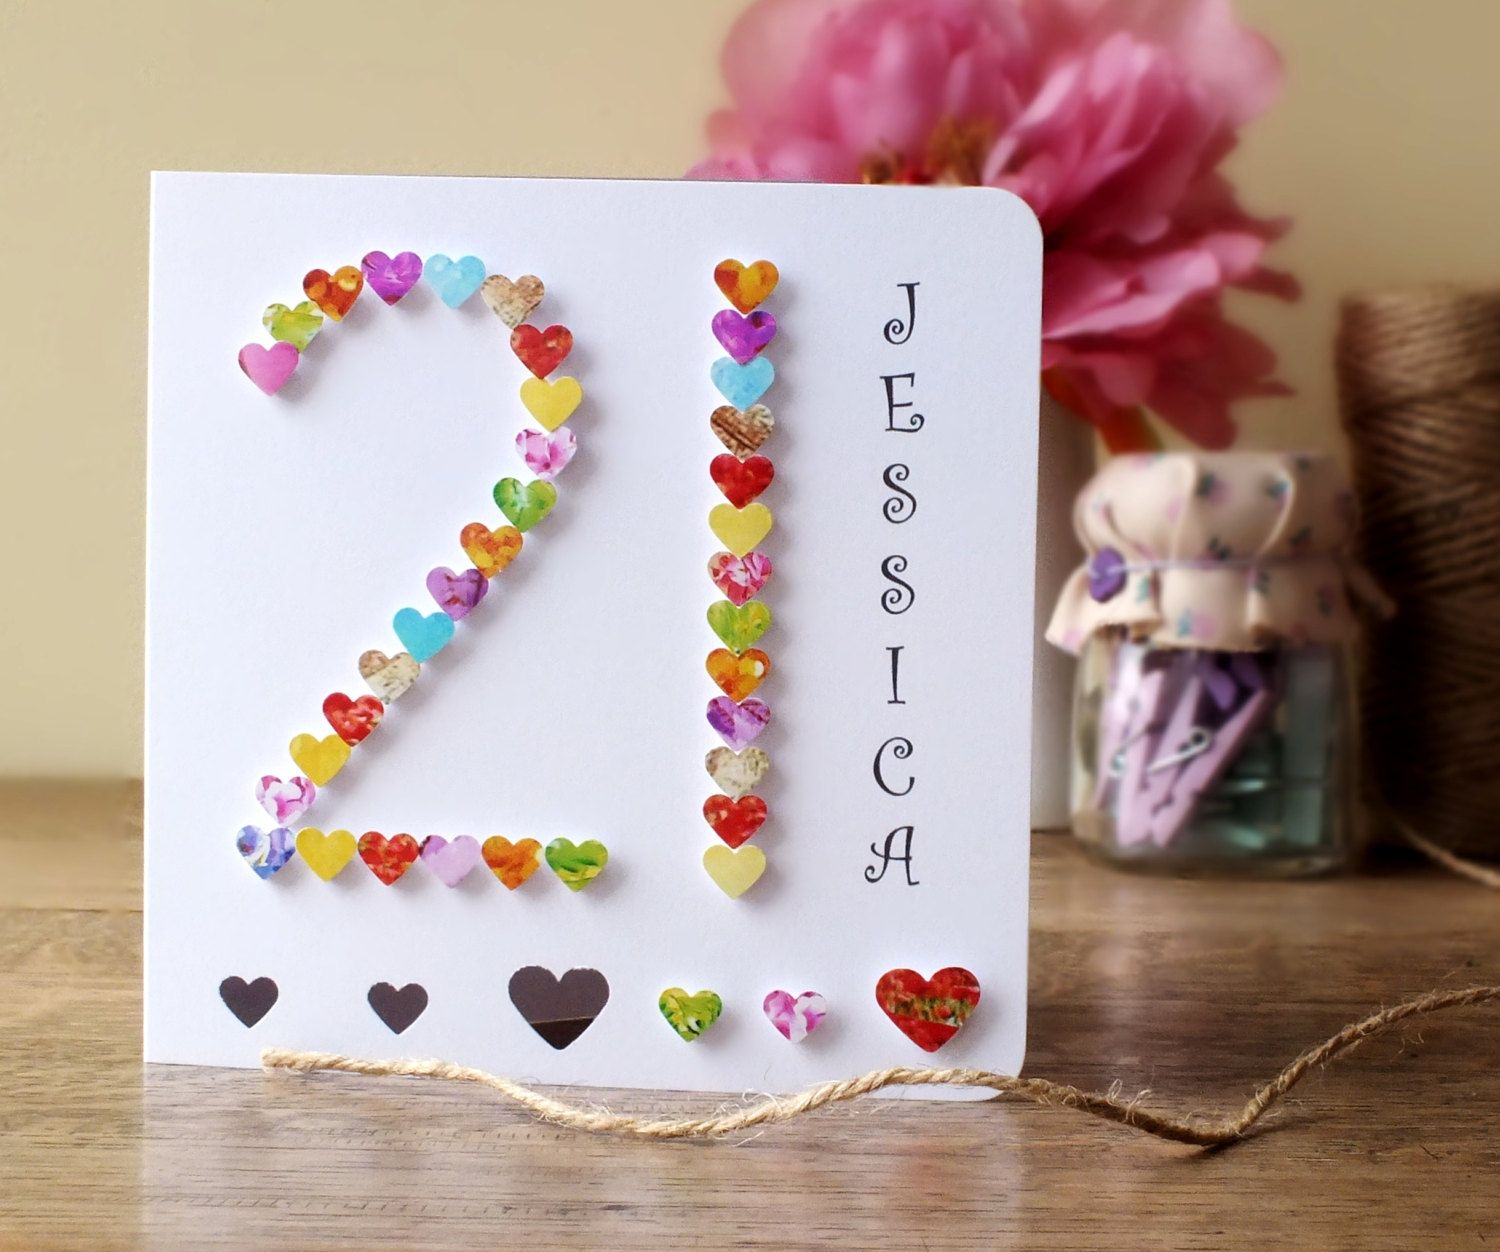 Beautiful Card Making Ideas 21st Birthday Part - 2: Cards Girls 21st Birthday Handmade - Google Search